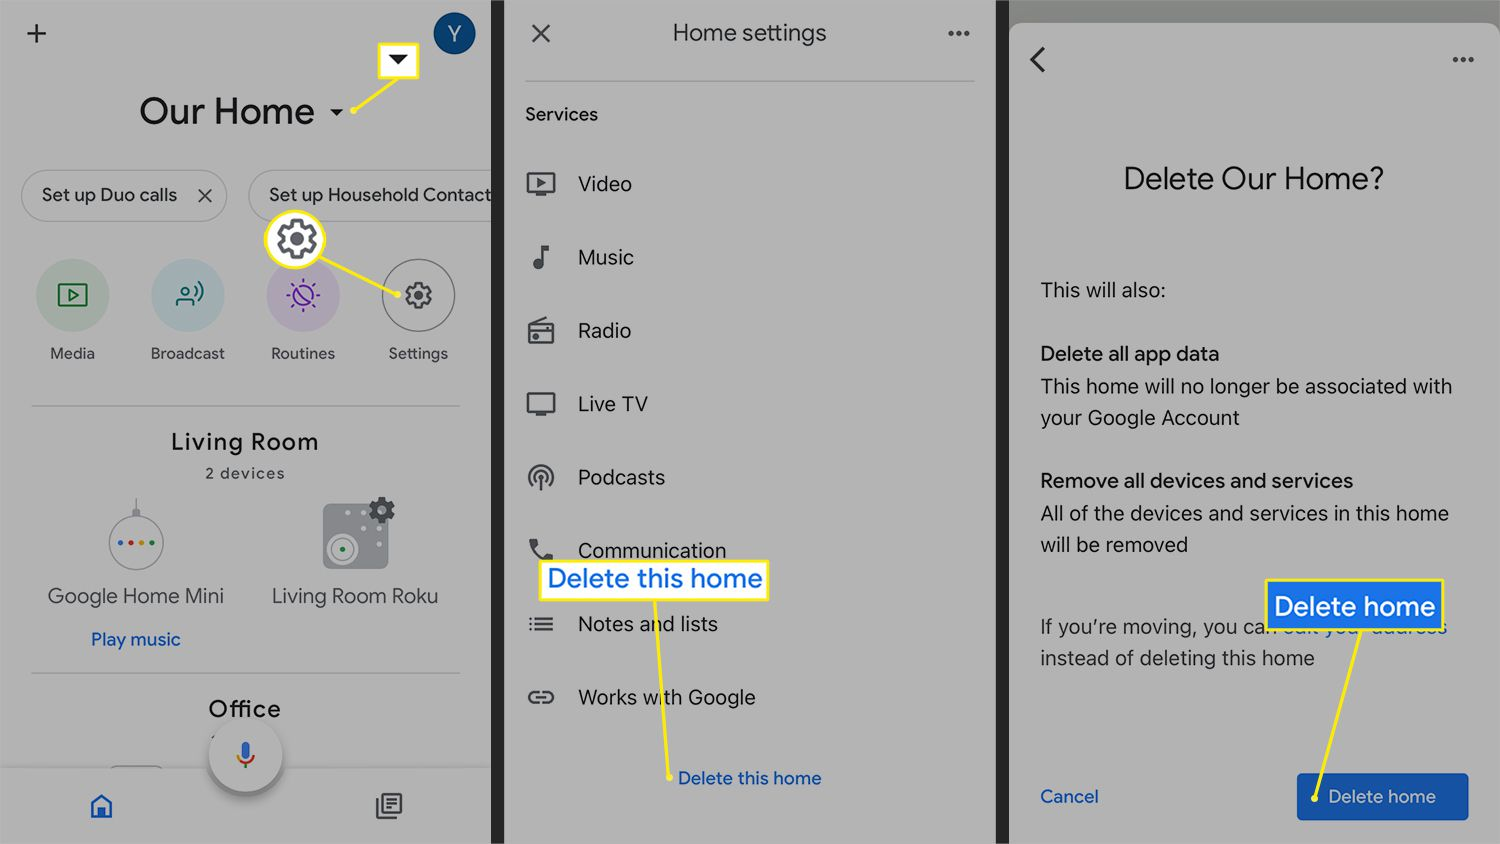 Steps for deleting an entire Home from the Google Home app